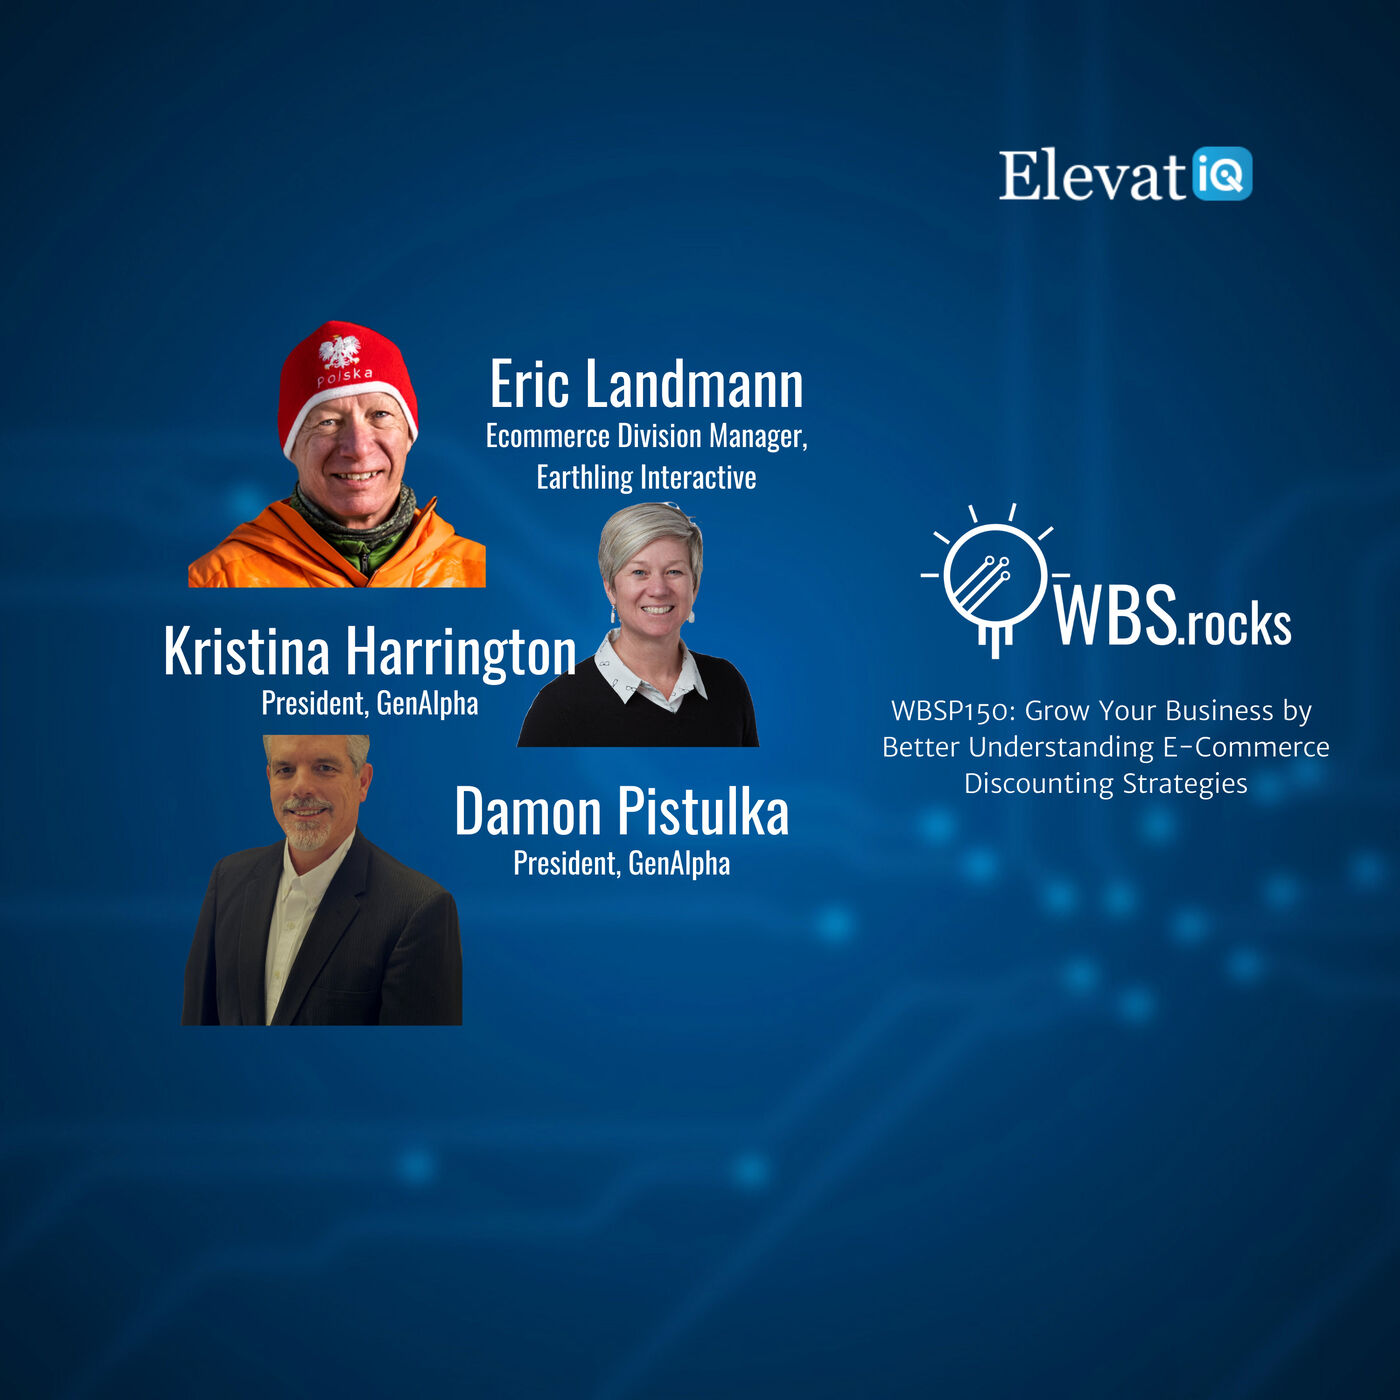 WBSP150: Grow Your Business by Better Understanding E-Commerce Discounting Strategies, a Live Interview w/ a Panel of Experts